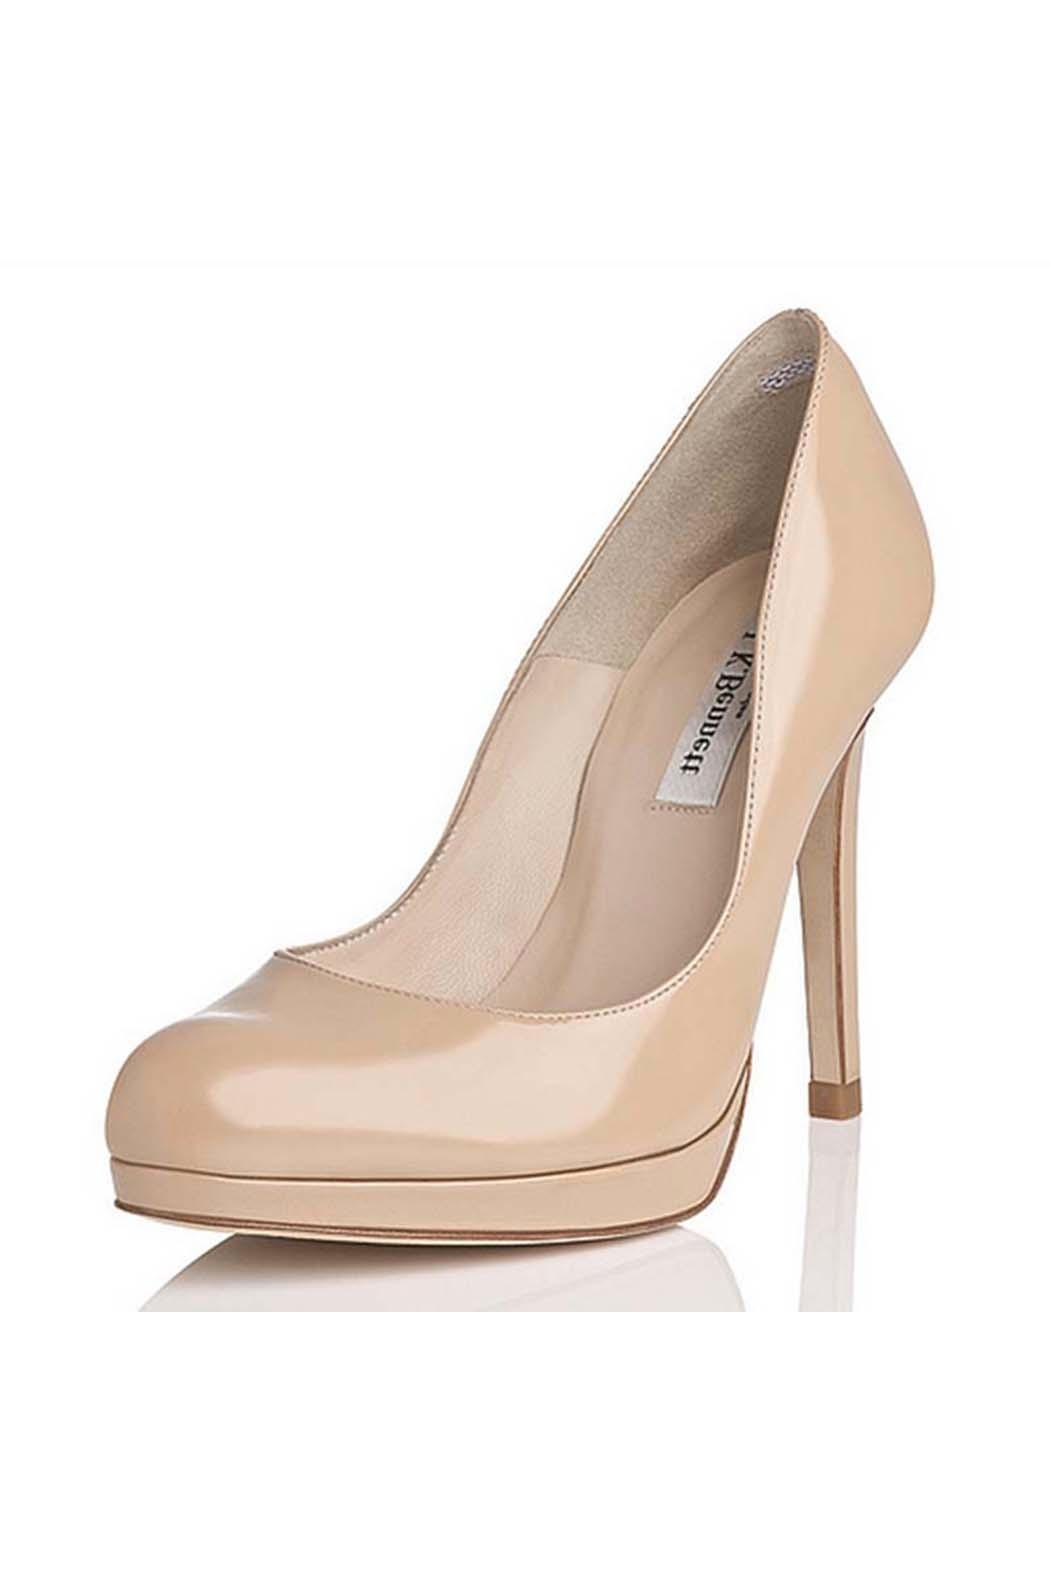 8252fc39639 LK BENNETT Sledge Heel Taupe from Alexandria by Bishop Boutique ...